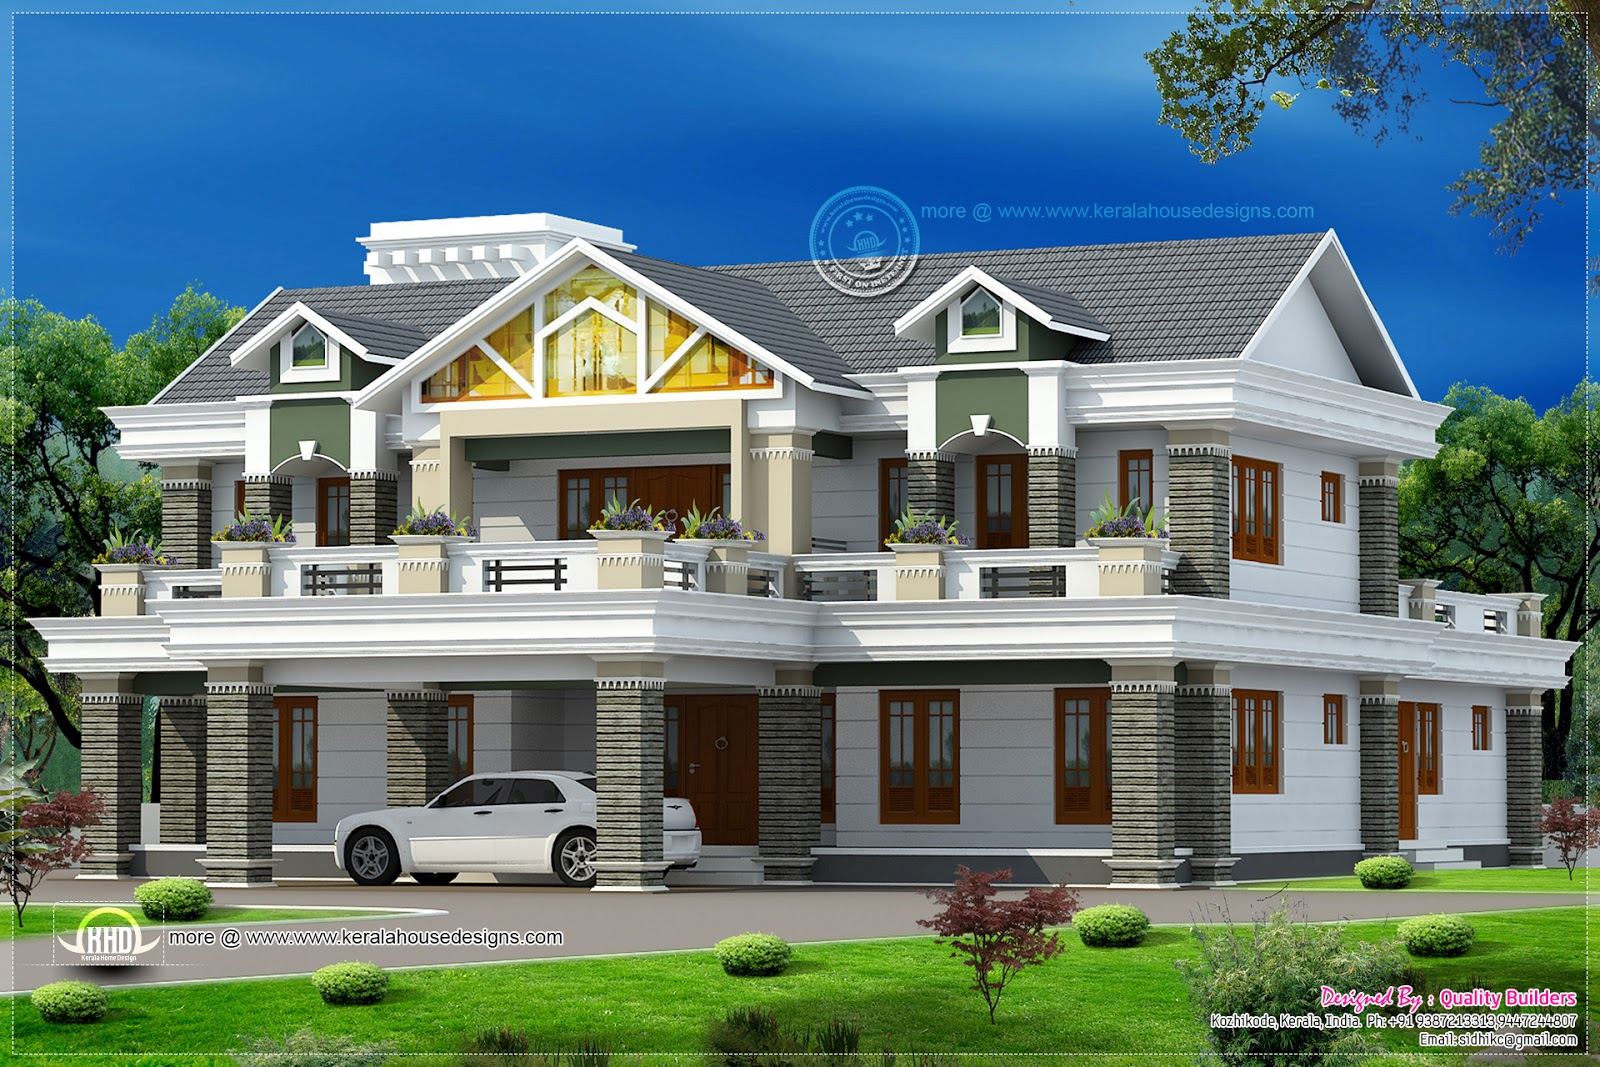 5935 super luxury home design kerala home design for Www homedesign com